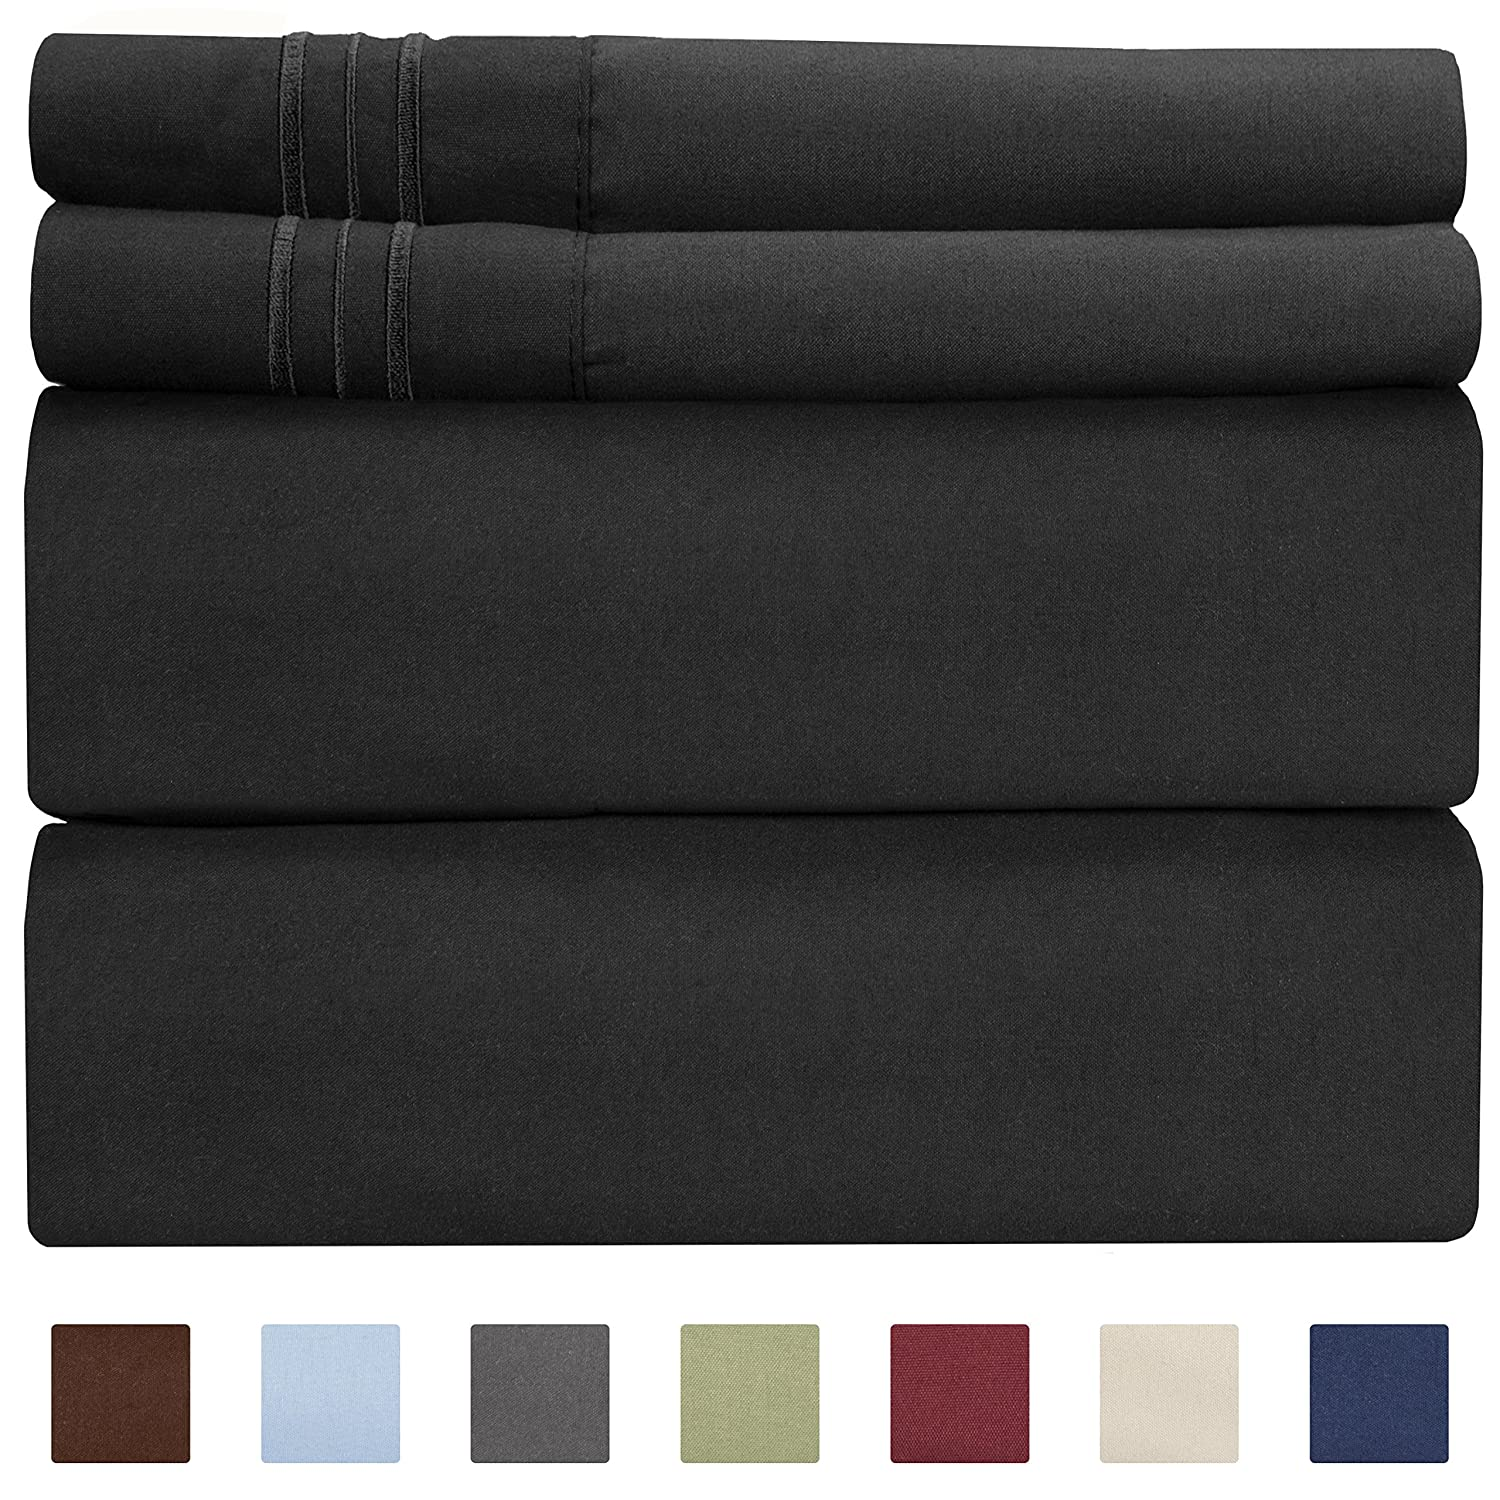 Extra Deep Pocket Sheets - Deep Pocket Cal King Size Sheets